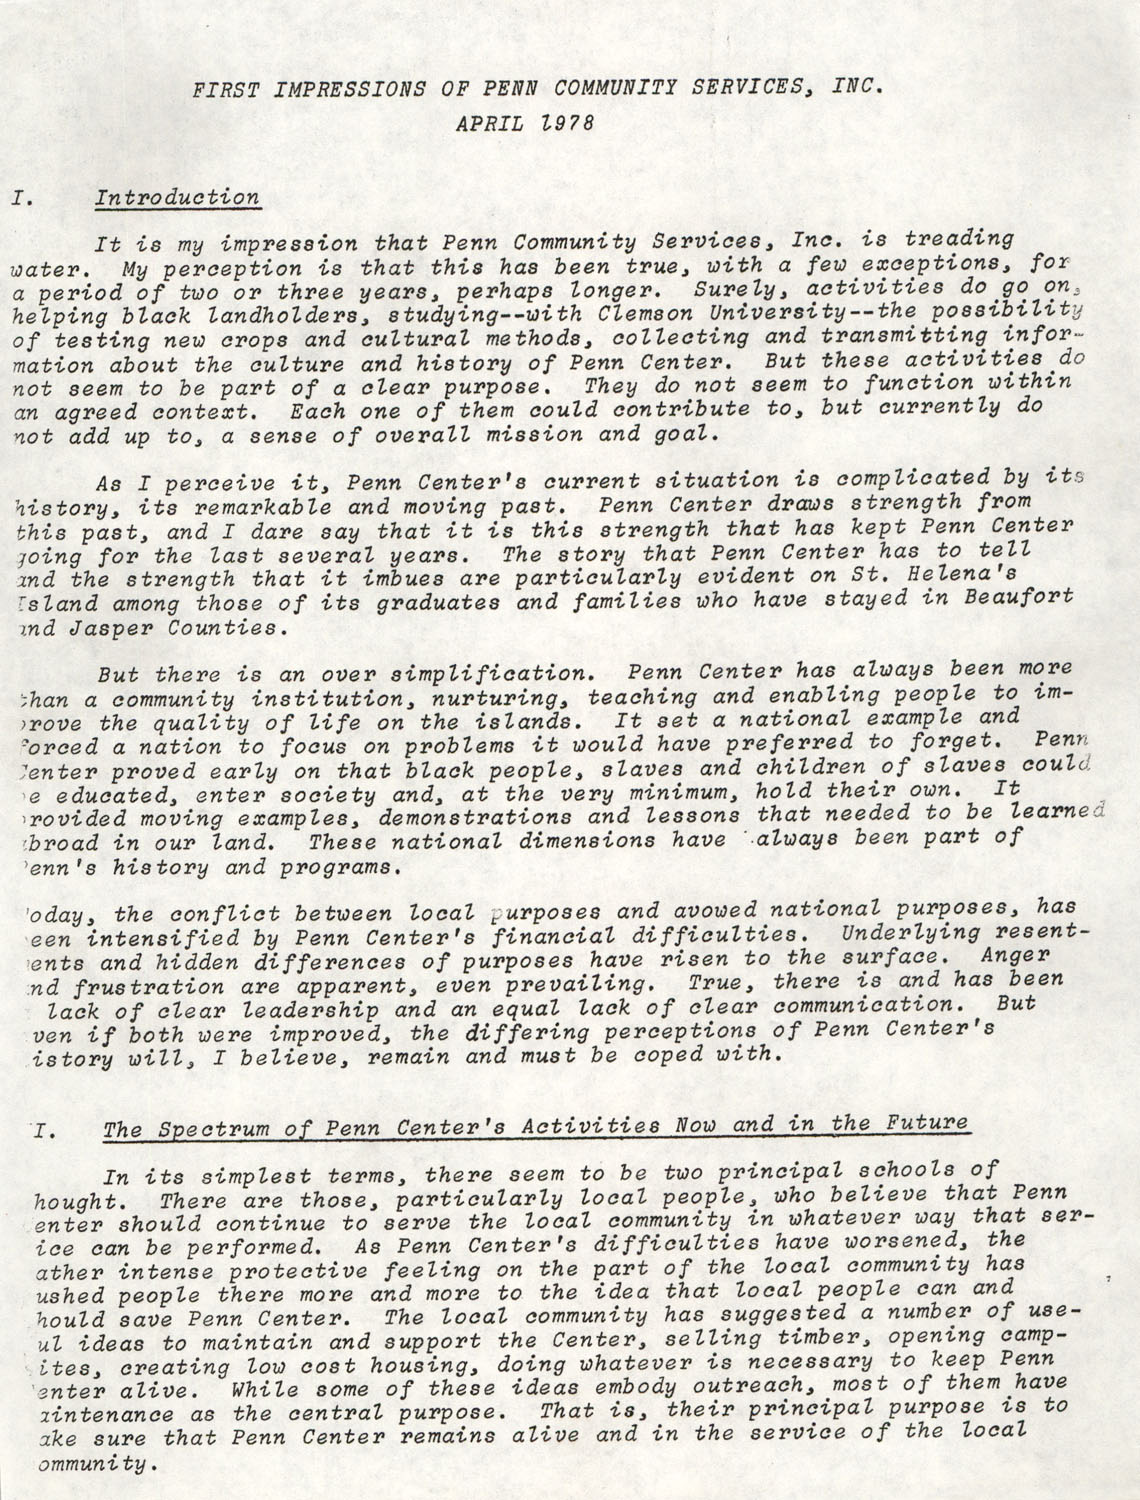 Planning and Management Assistance Project Report, Penn Community Services, April 1978, Page 1